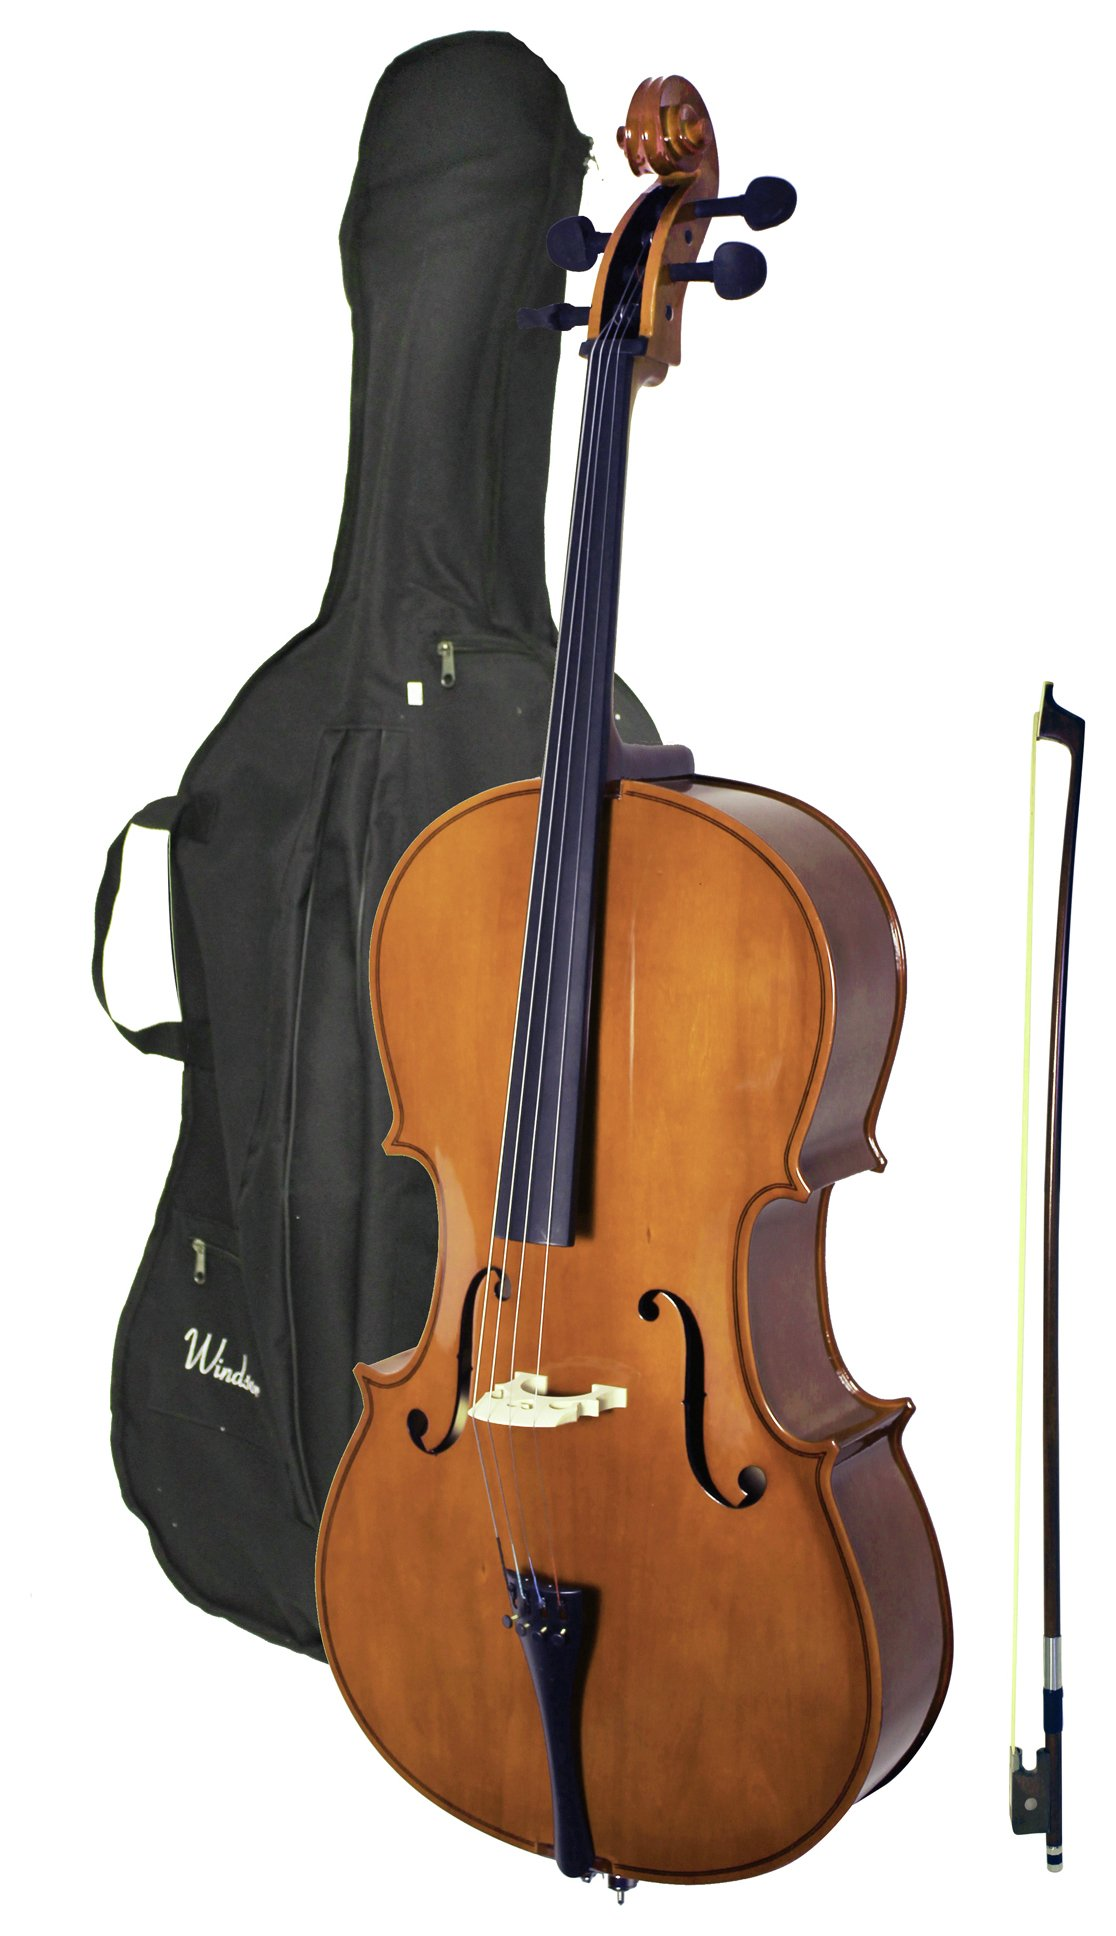 Image of Windsor Cello 4/4 Size with Bag.